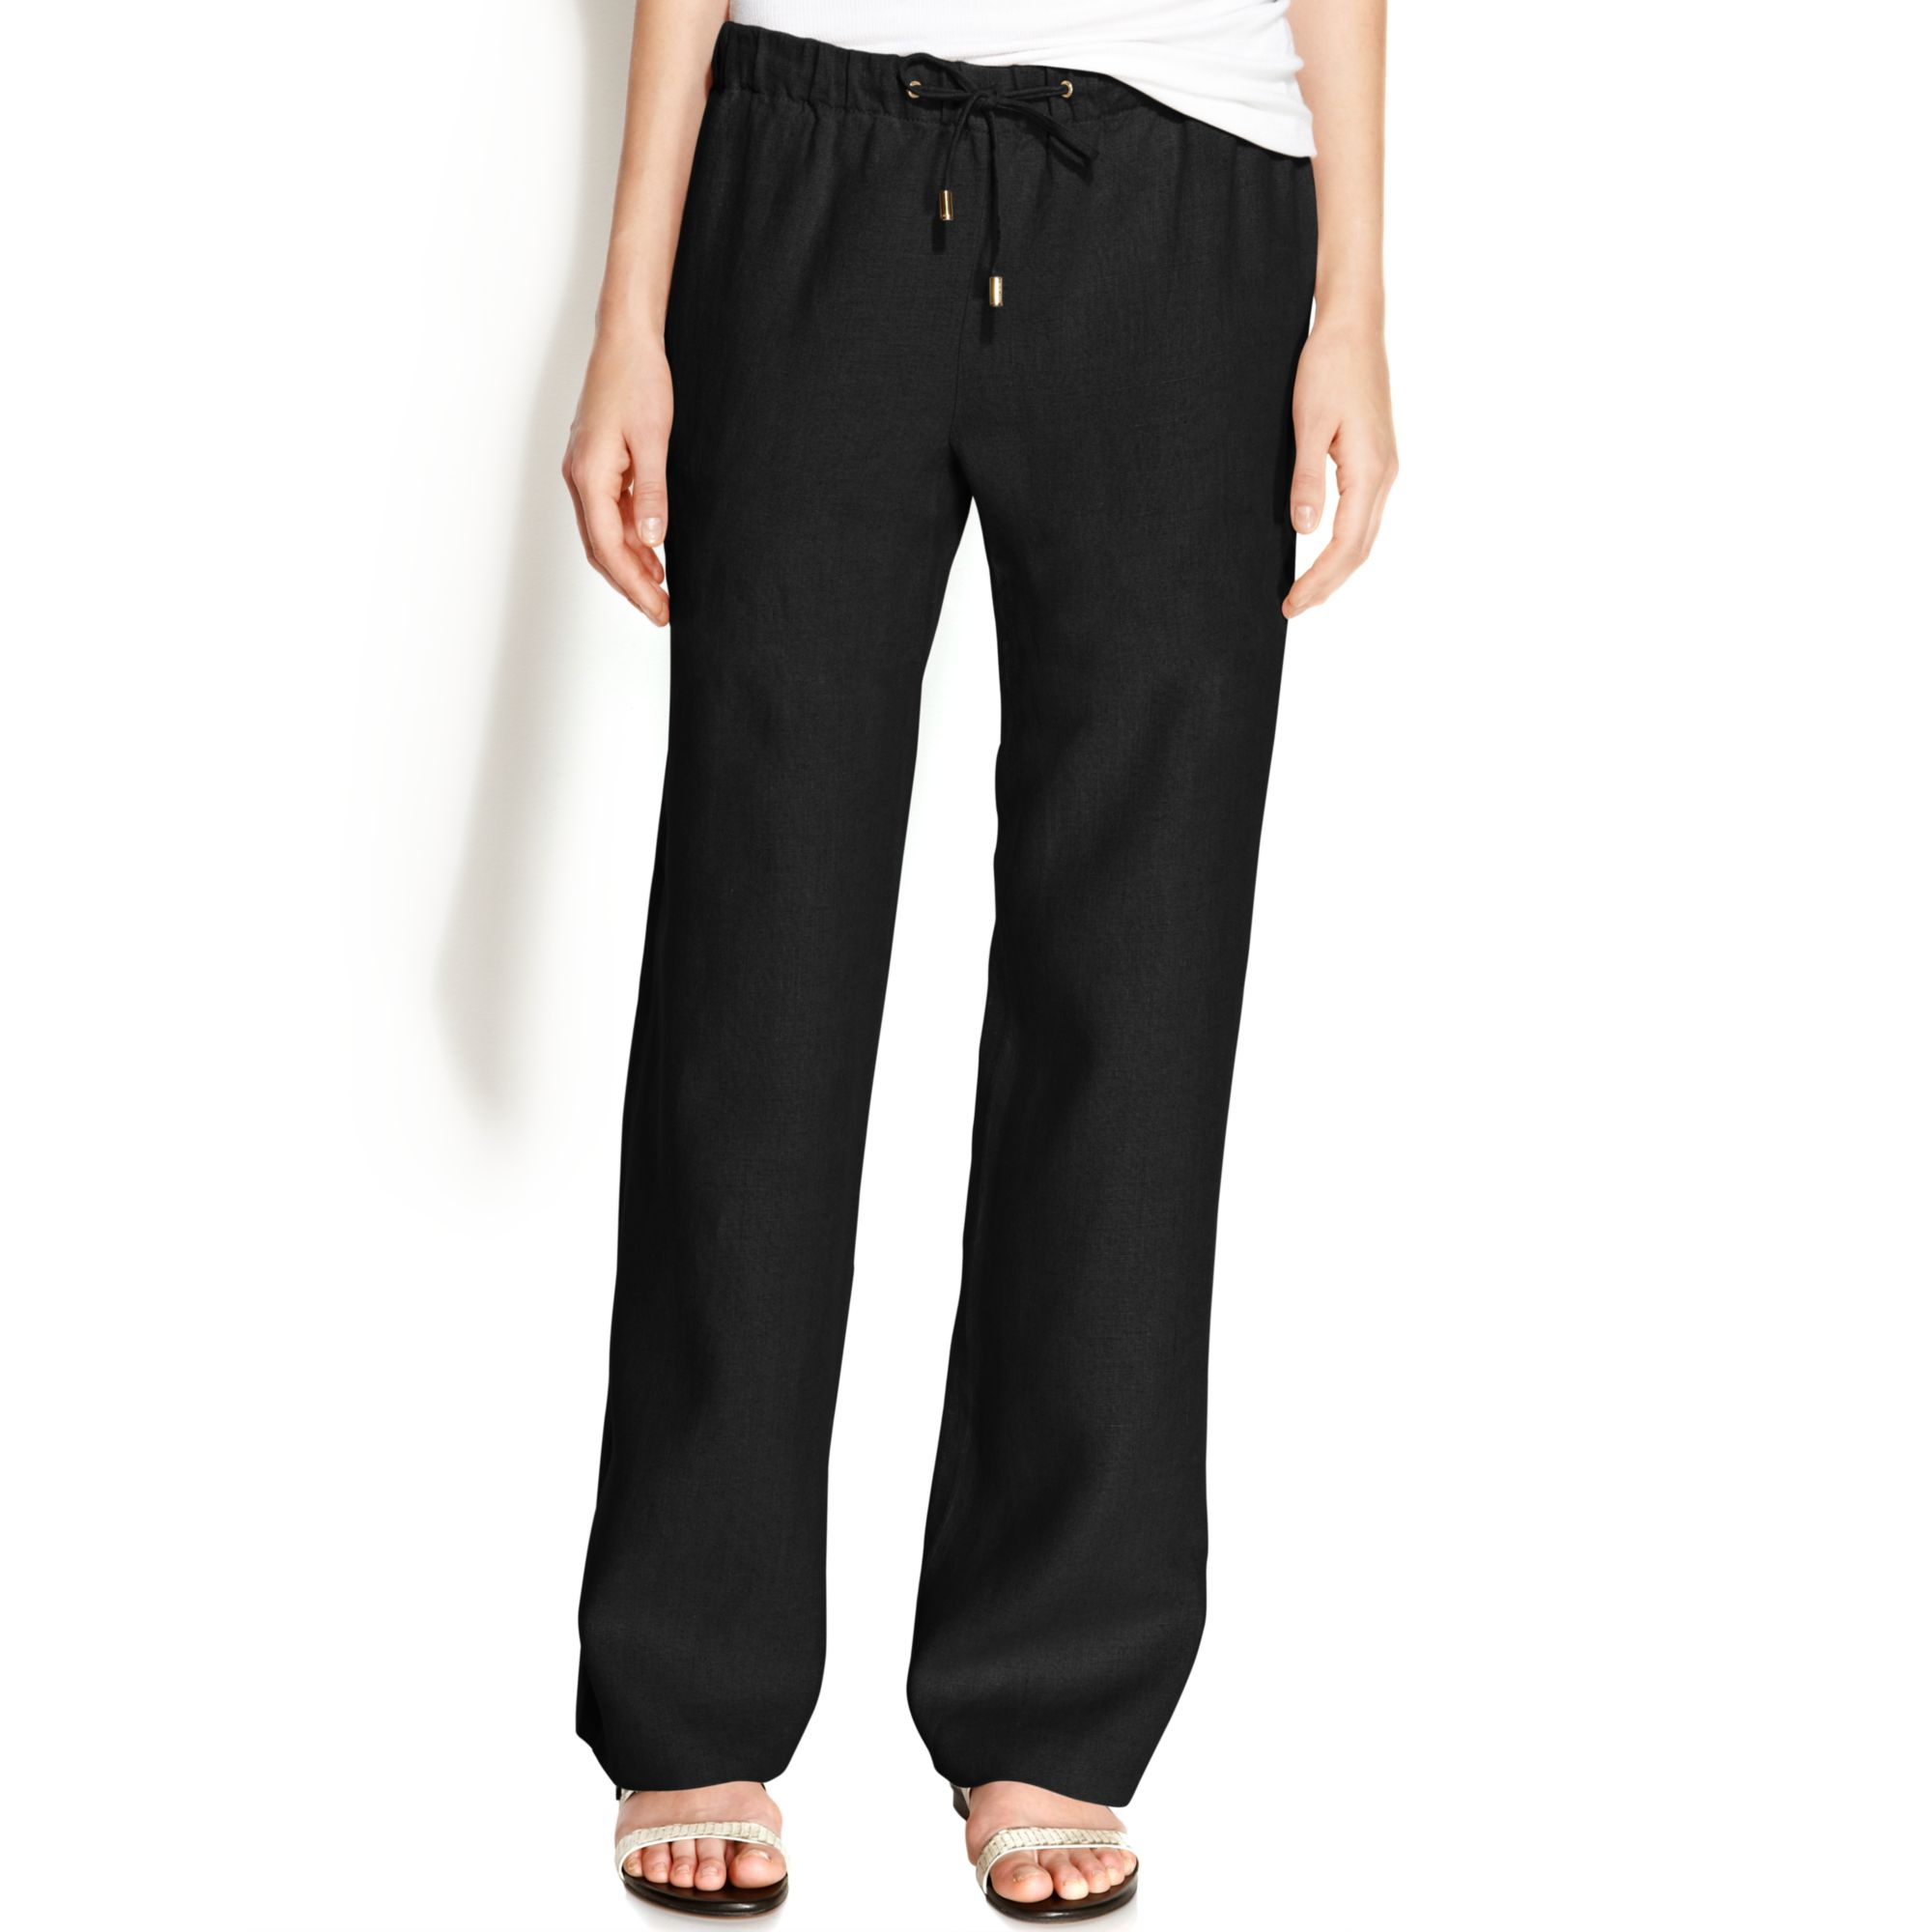 The pants selection at Gap features all the current styles, colors and fabrics. Discover pant styles that range from dressy to casual for everyone in the family. Constructed for flattering comfort, our pants are cut with designer details.